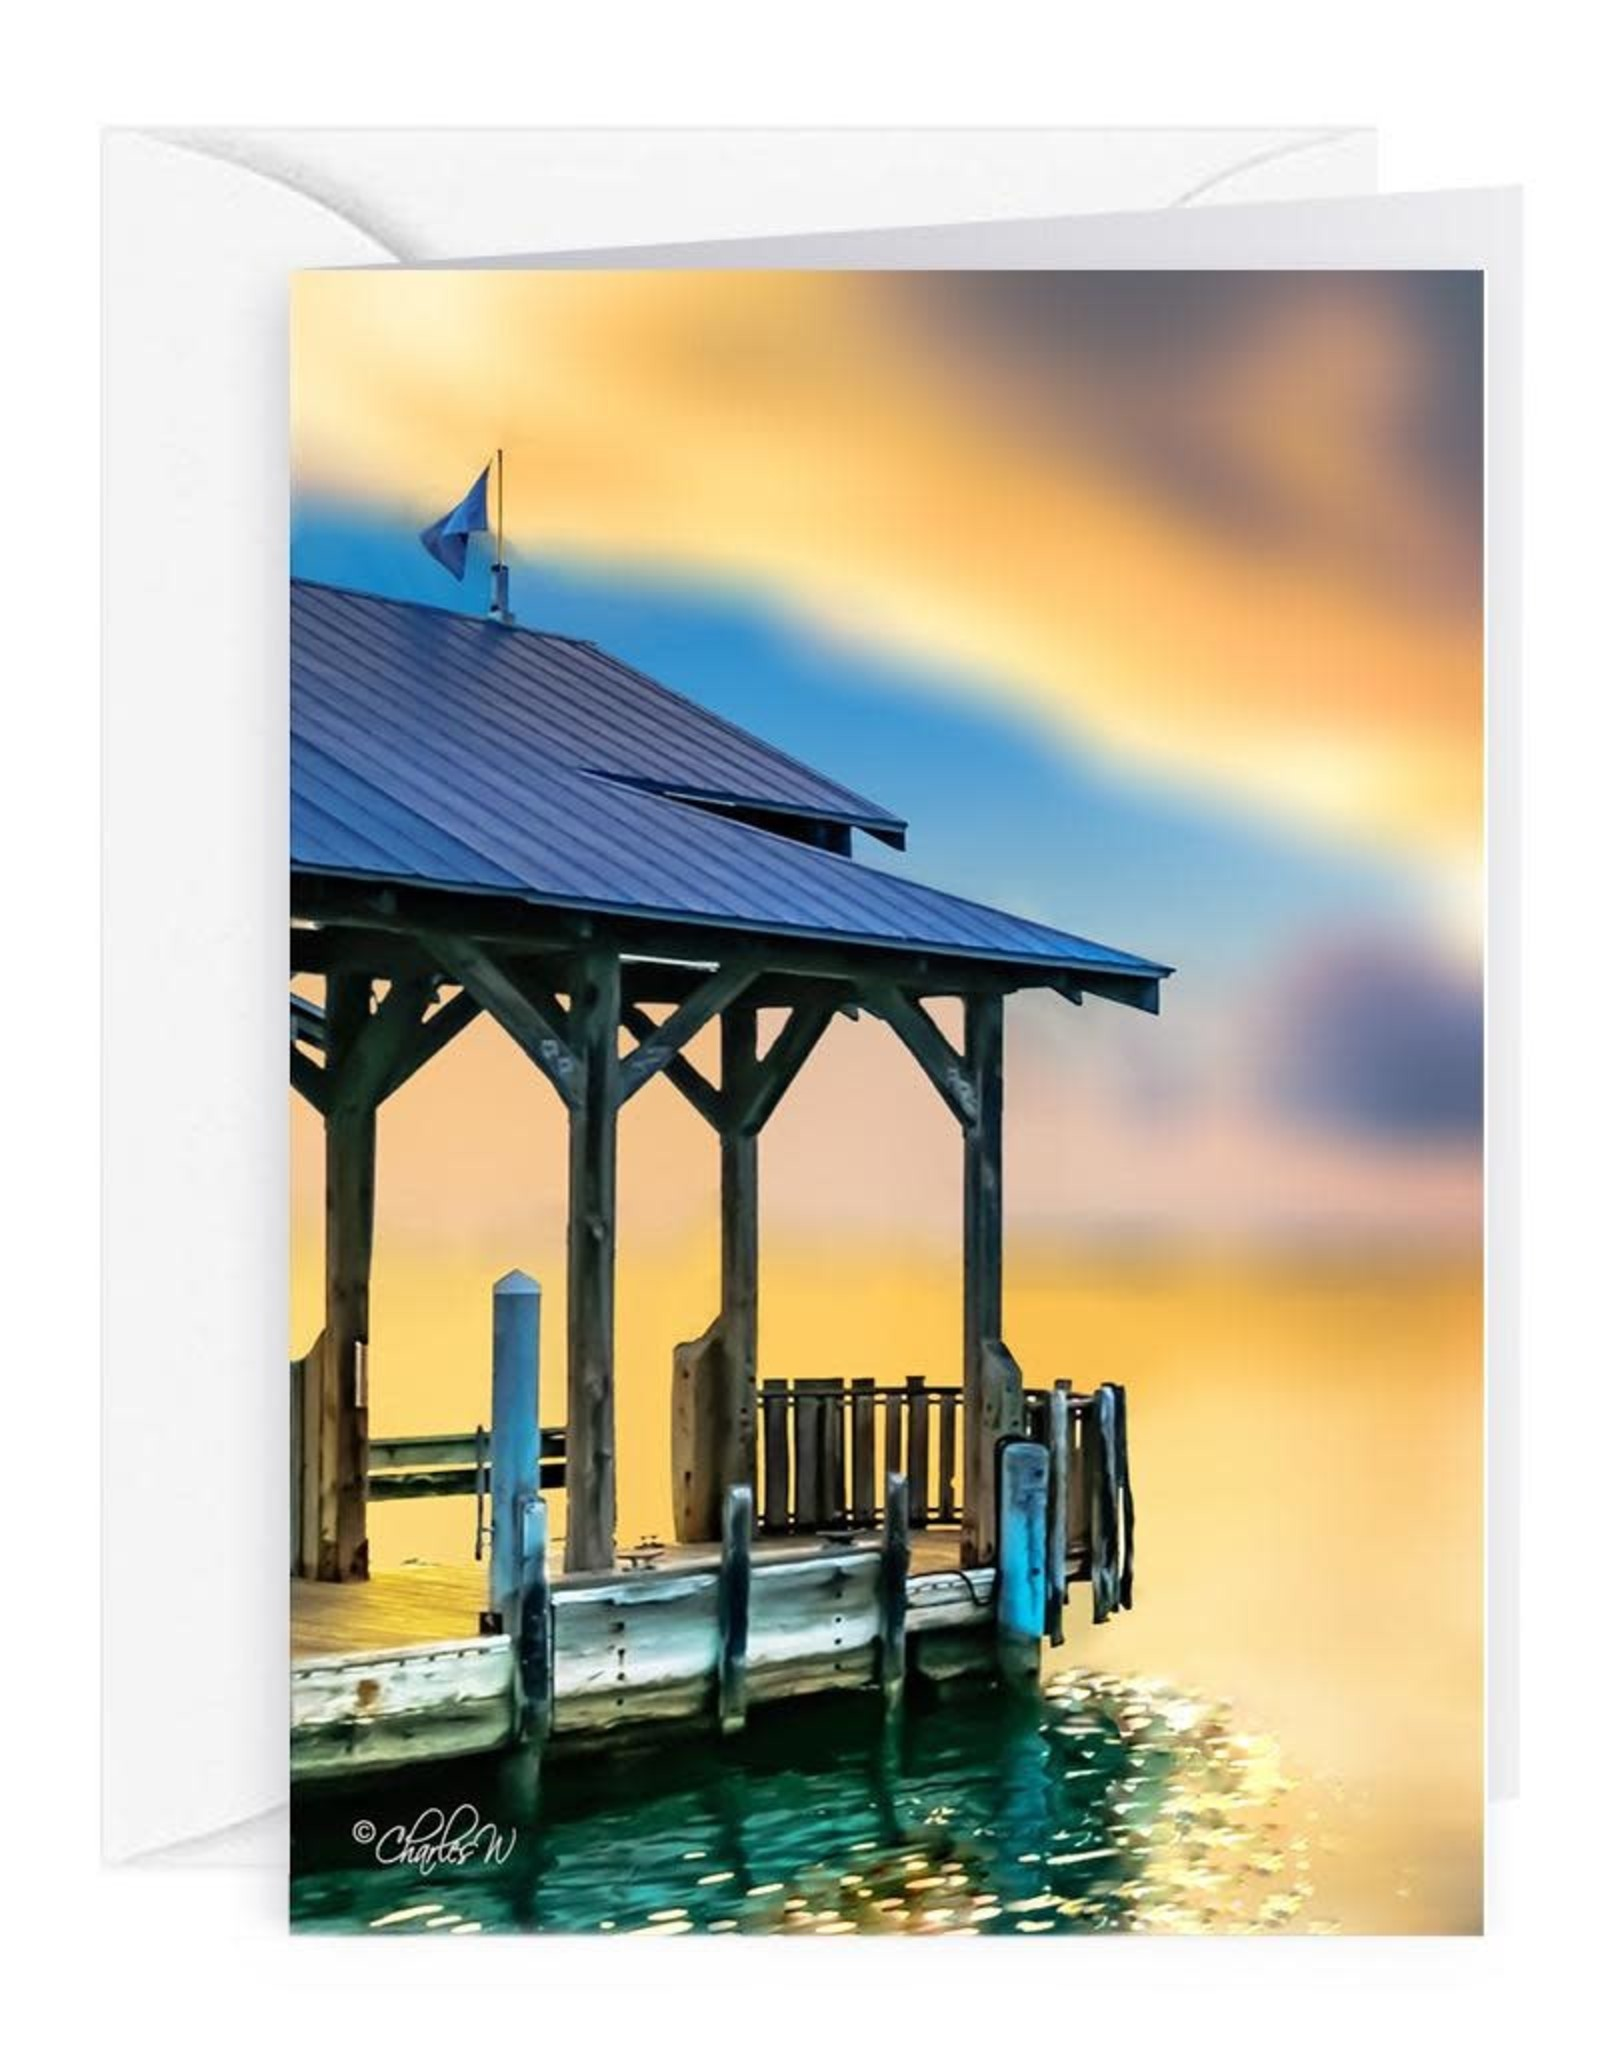 By The Seas-N Greetings Blank Note Card - Cash - Gift Card Holder - Sunset Key Dock II